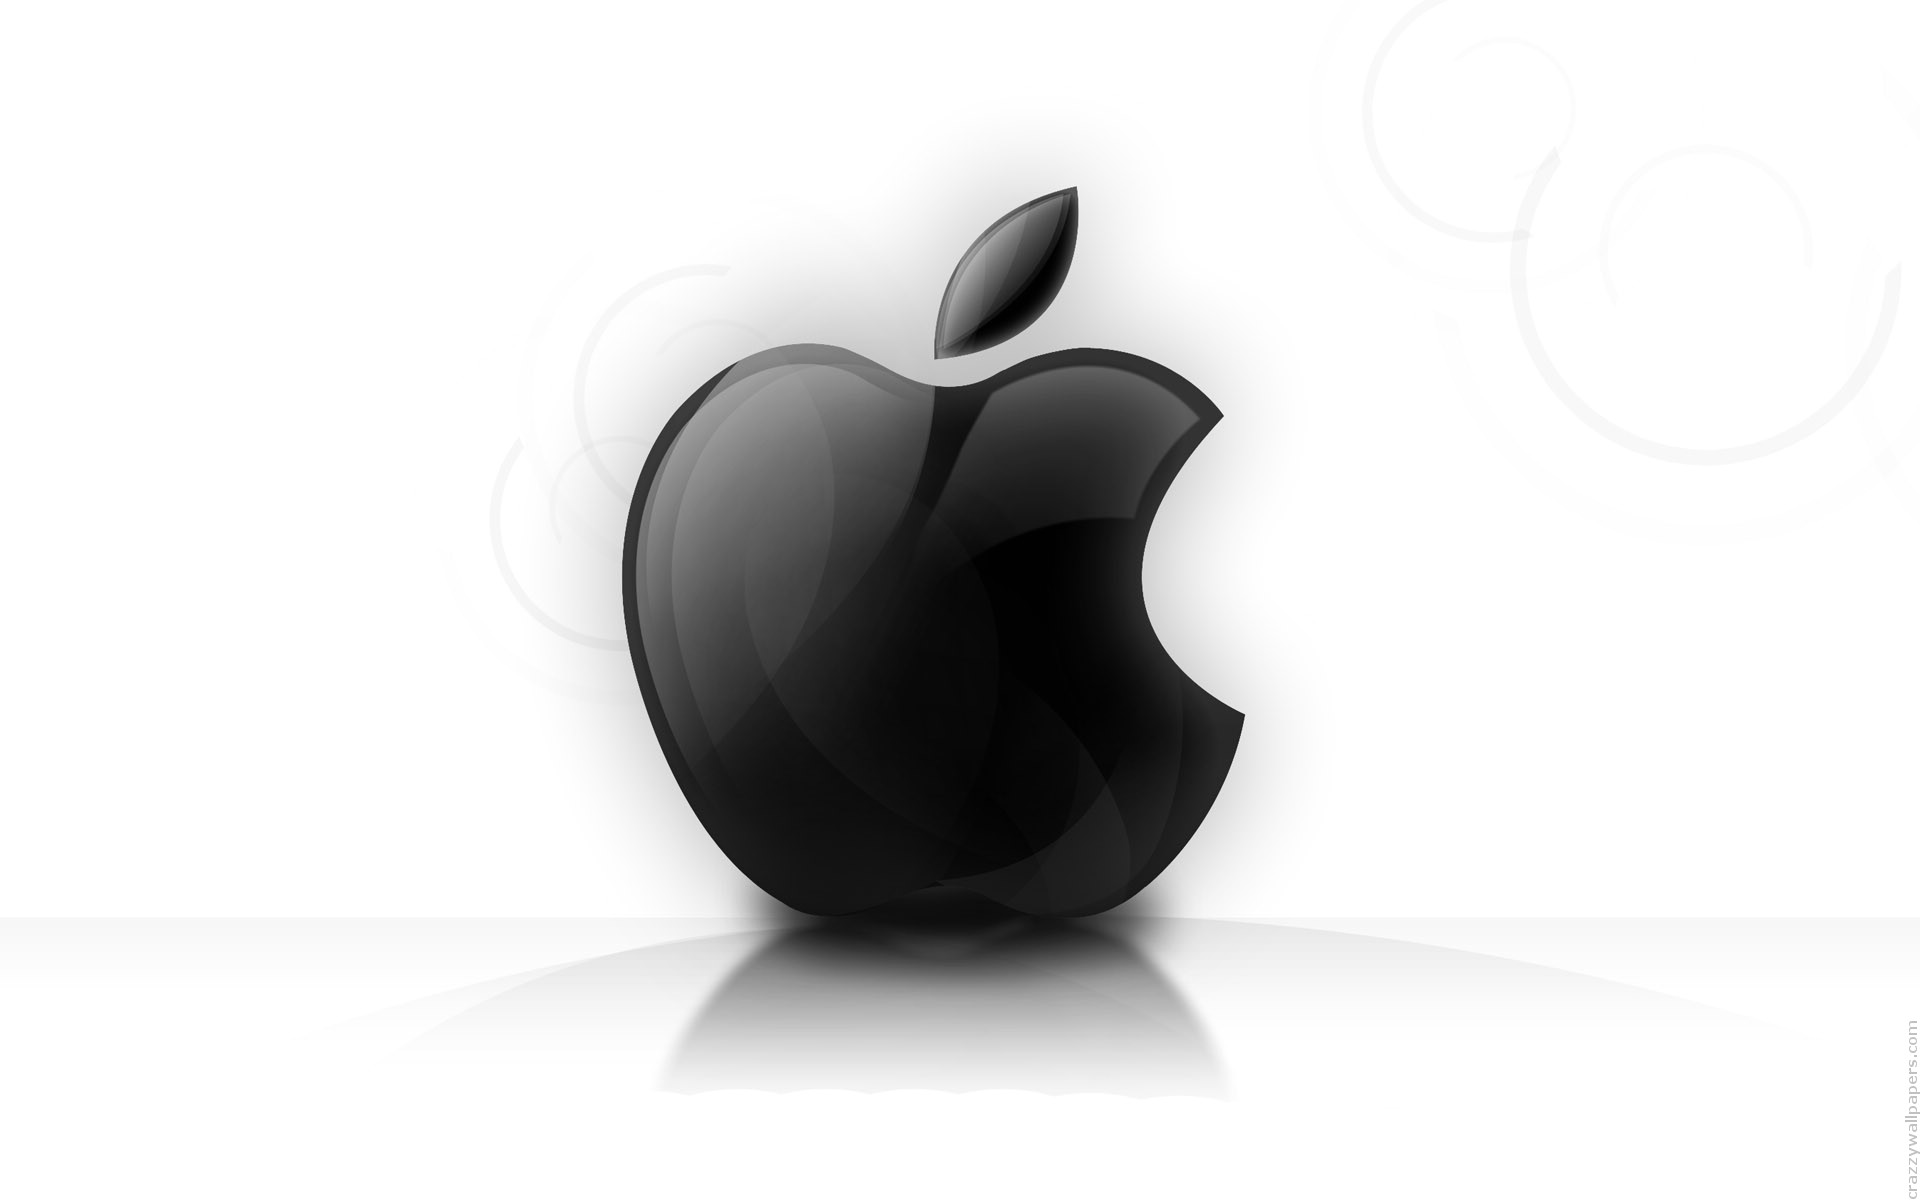 APPLE-and-MACOSX-think-different-free-wallpaper-logo